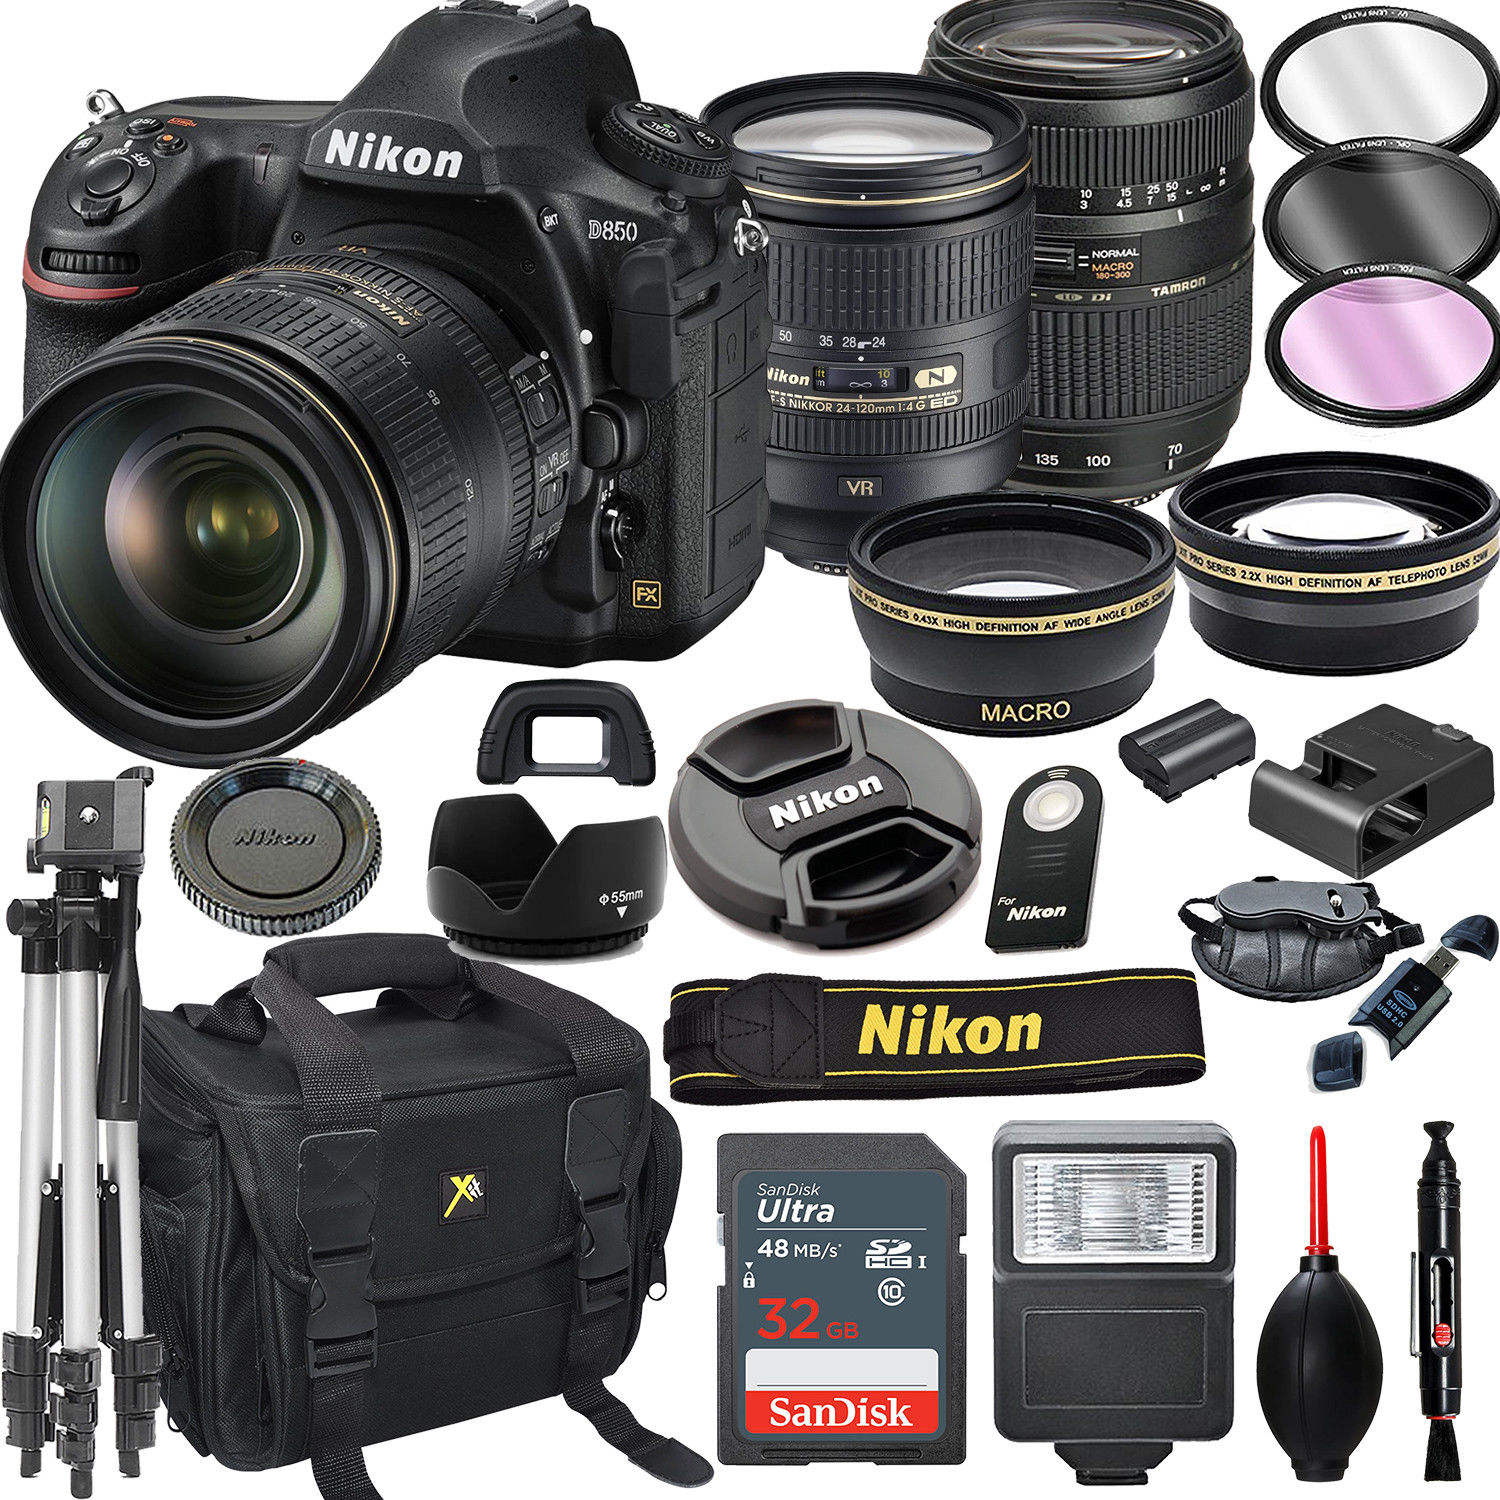 Factory Price NikonS D850 D800 D750 D700 D500 FX DSLR with 24-120mm VR + Tamron 70-300mm Lenses+ 20pc Bundle